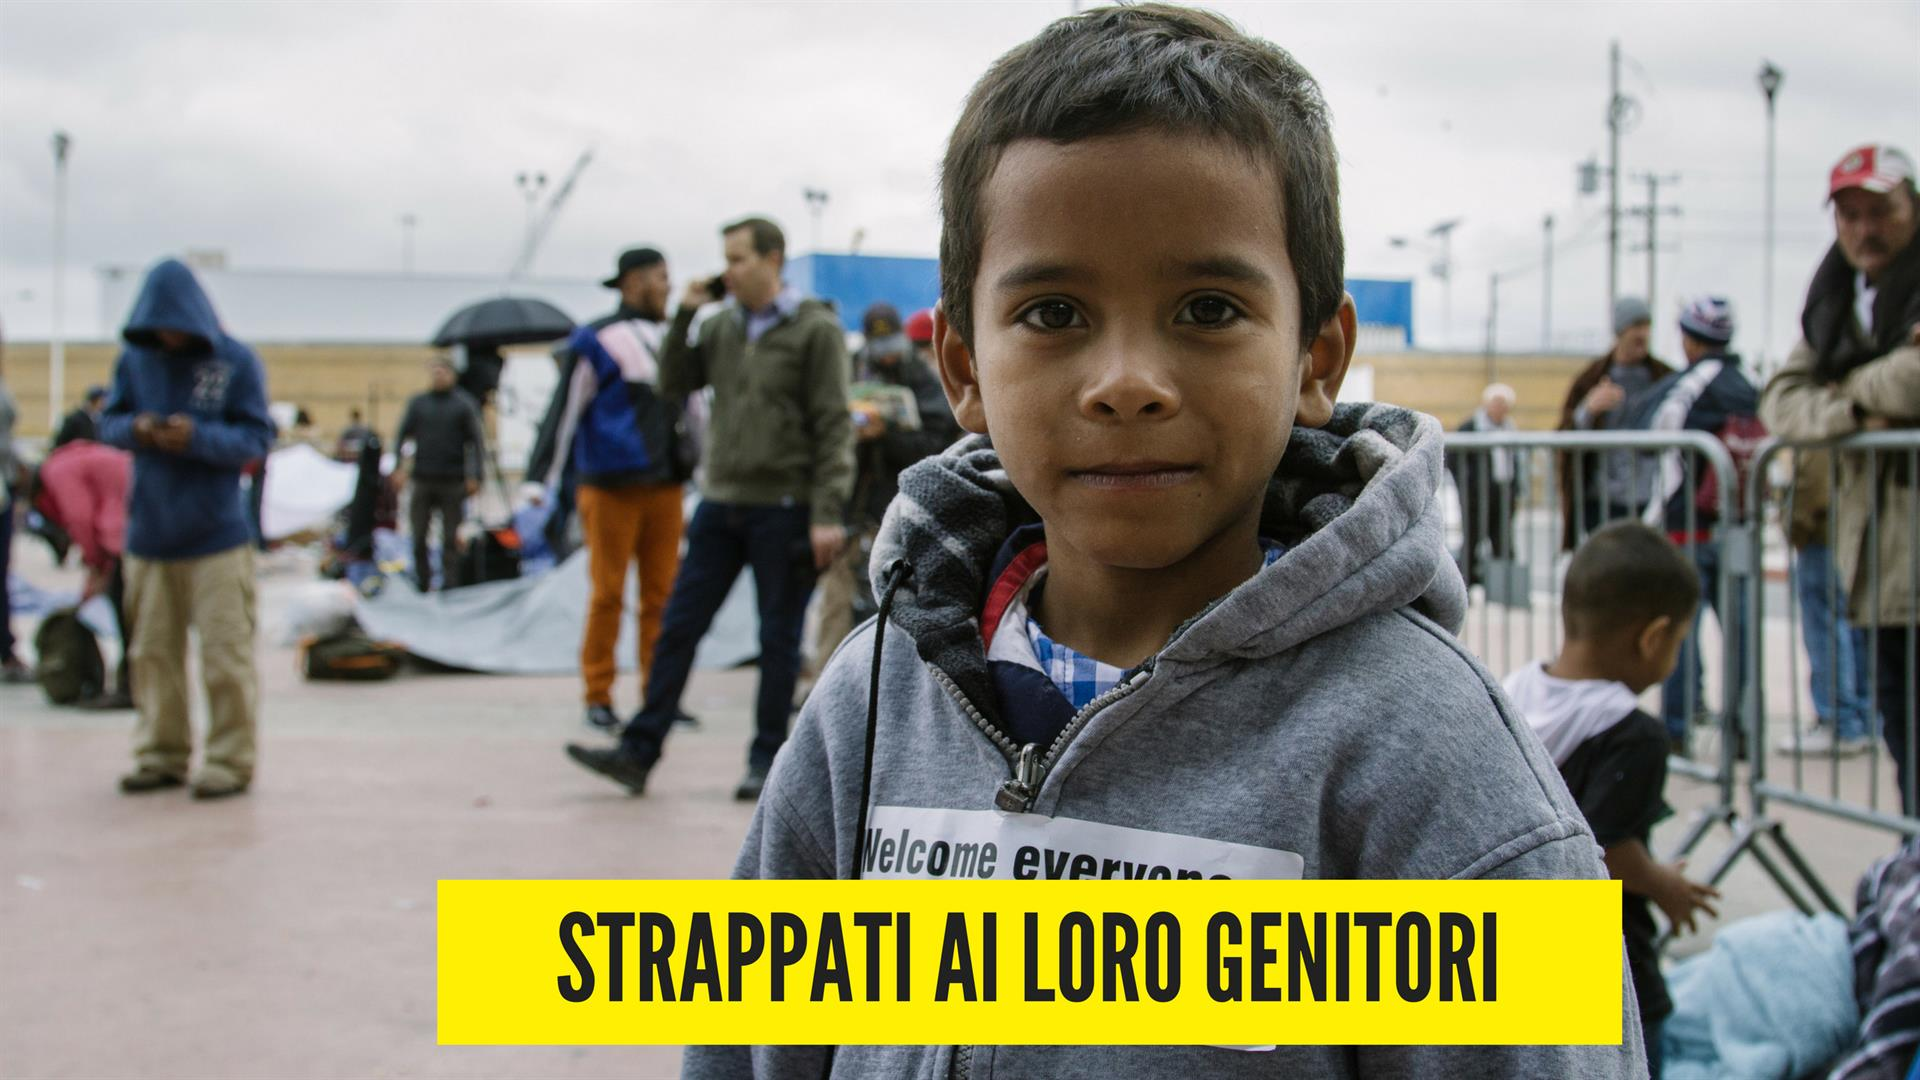 Amnesty International: Strappati ai loro genitori